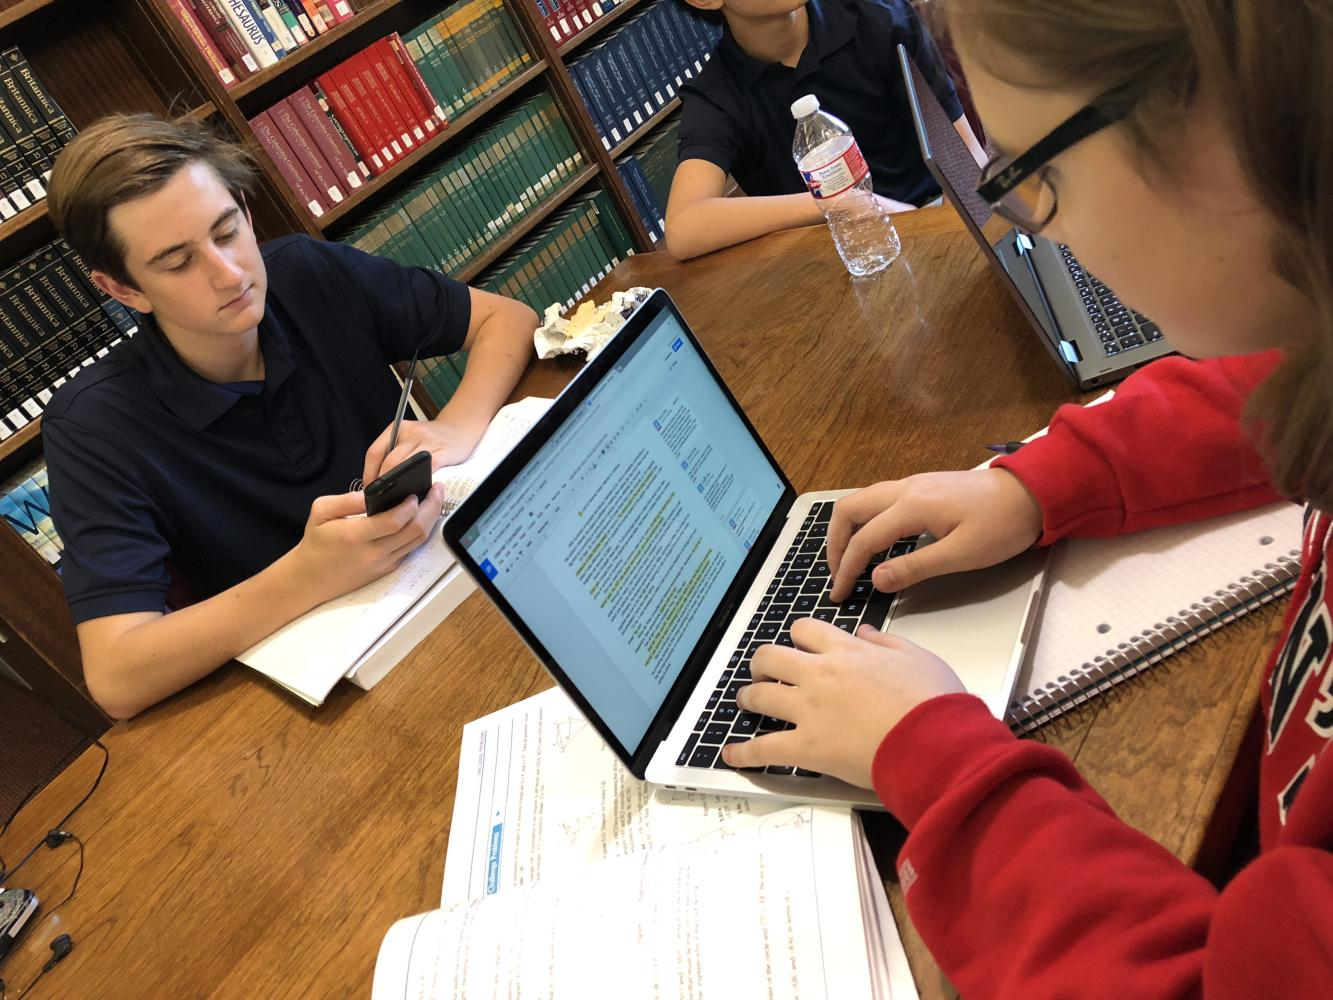 Students enjoy the improved internet as they work in the library.